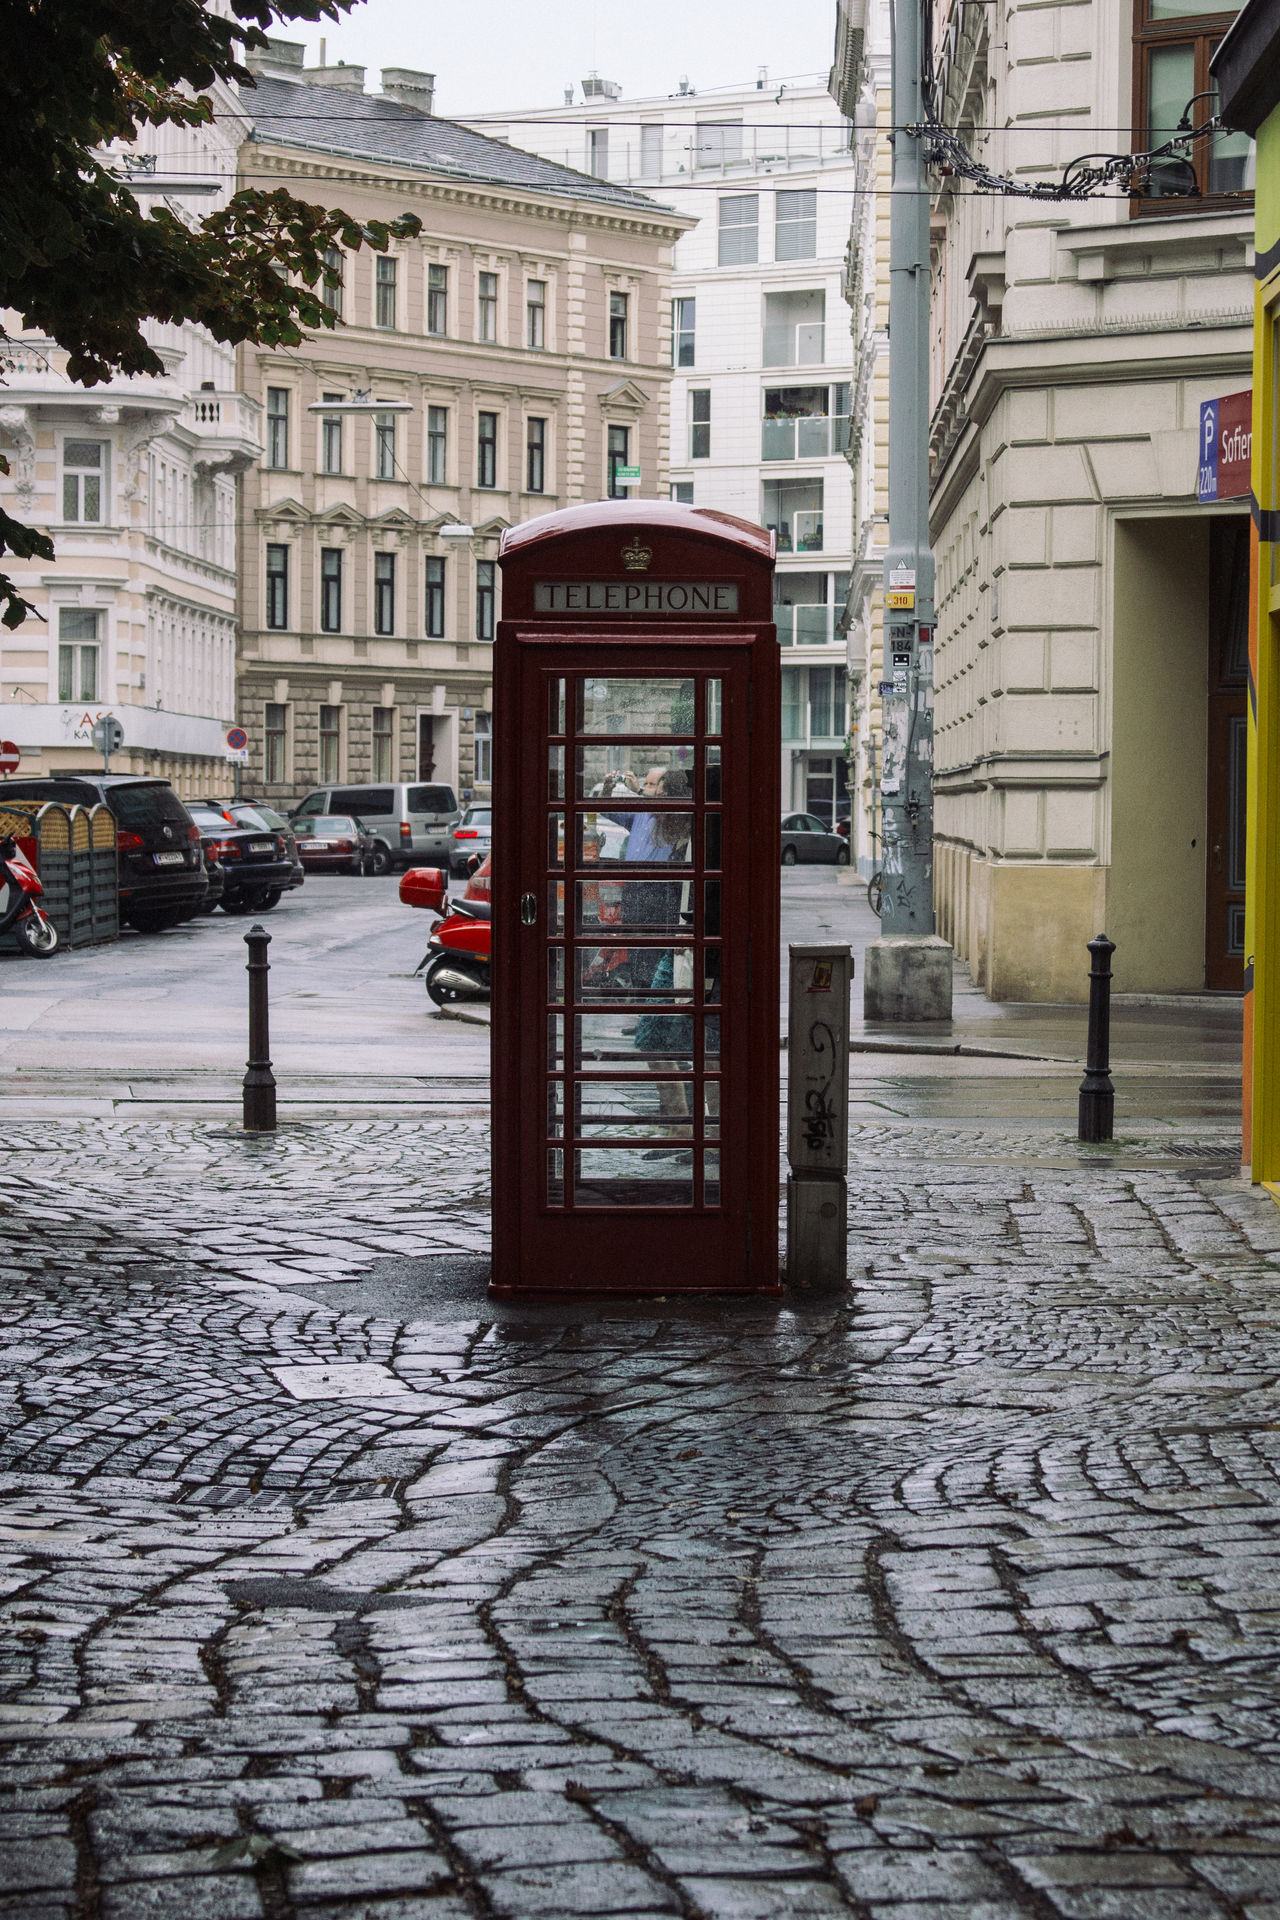 Architecture Building Exterior Built Structure City City Street Outdoors Telephone Booth